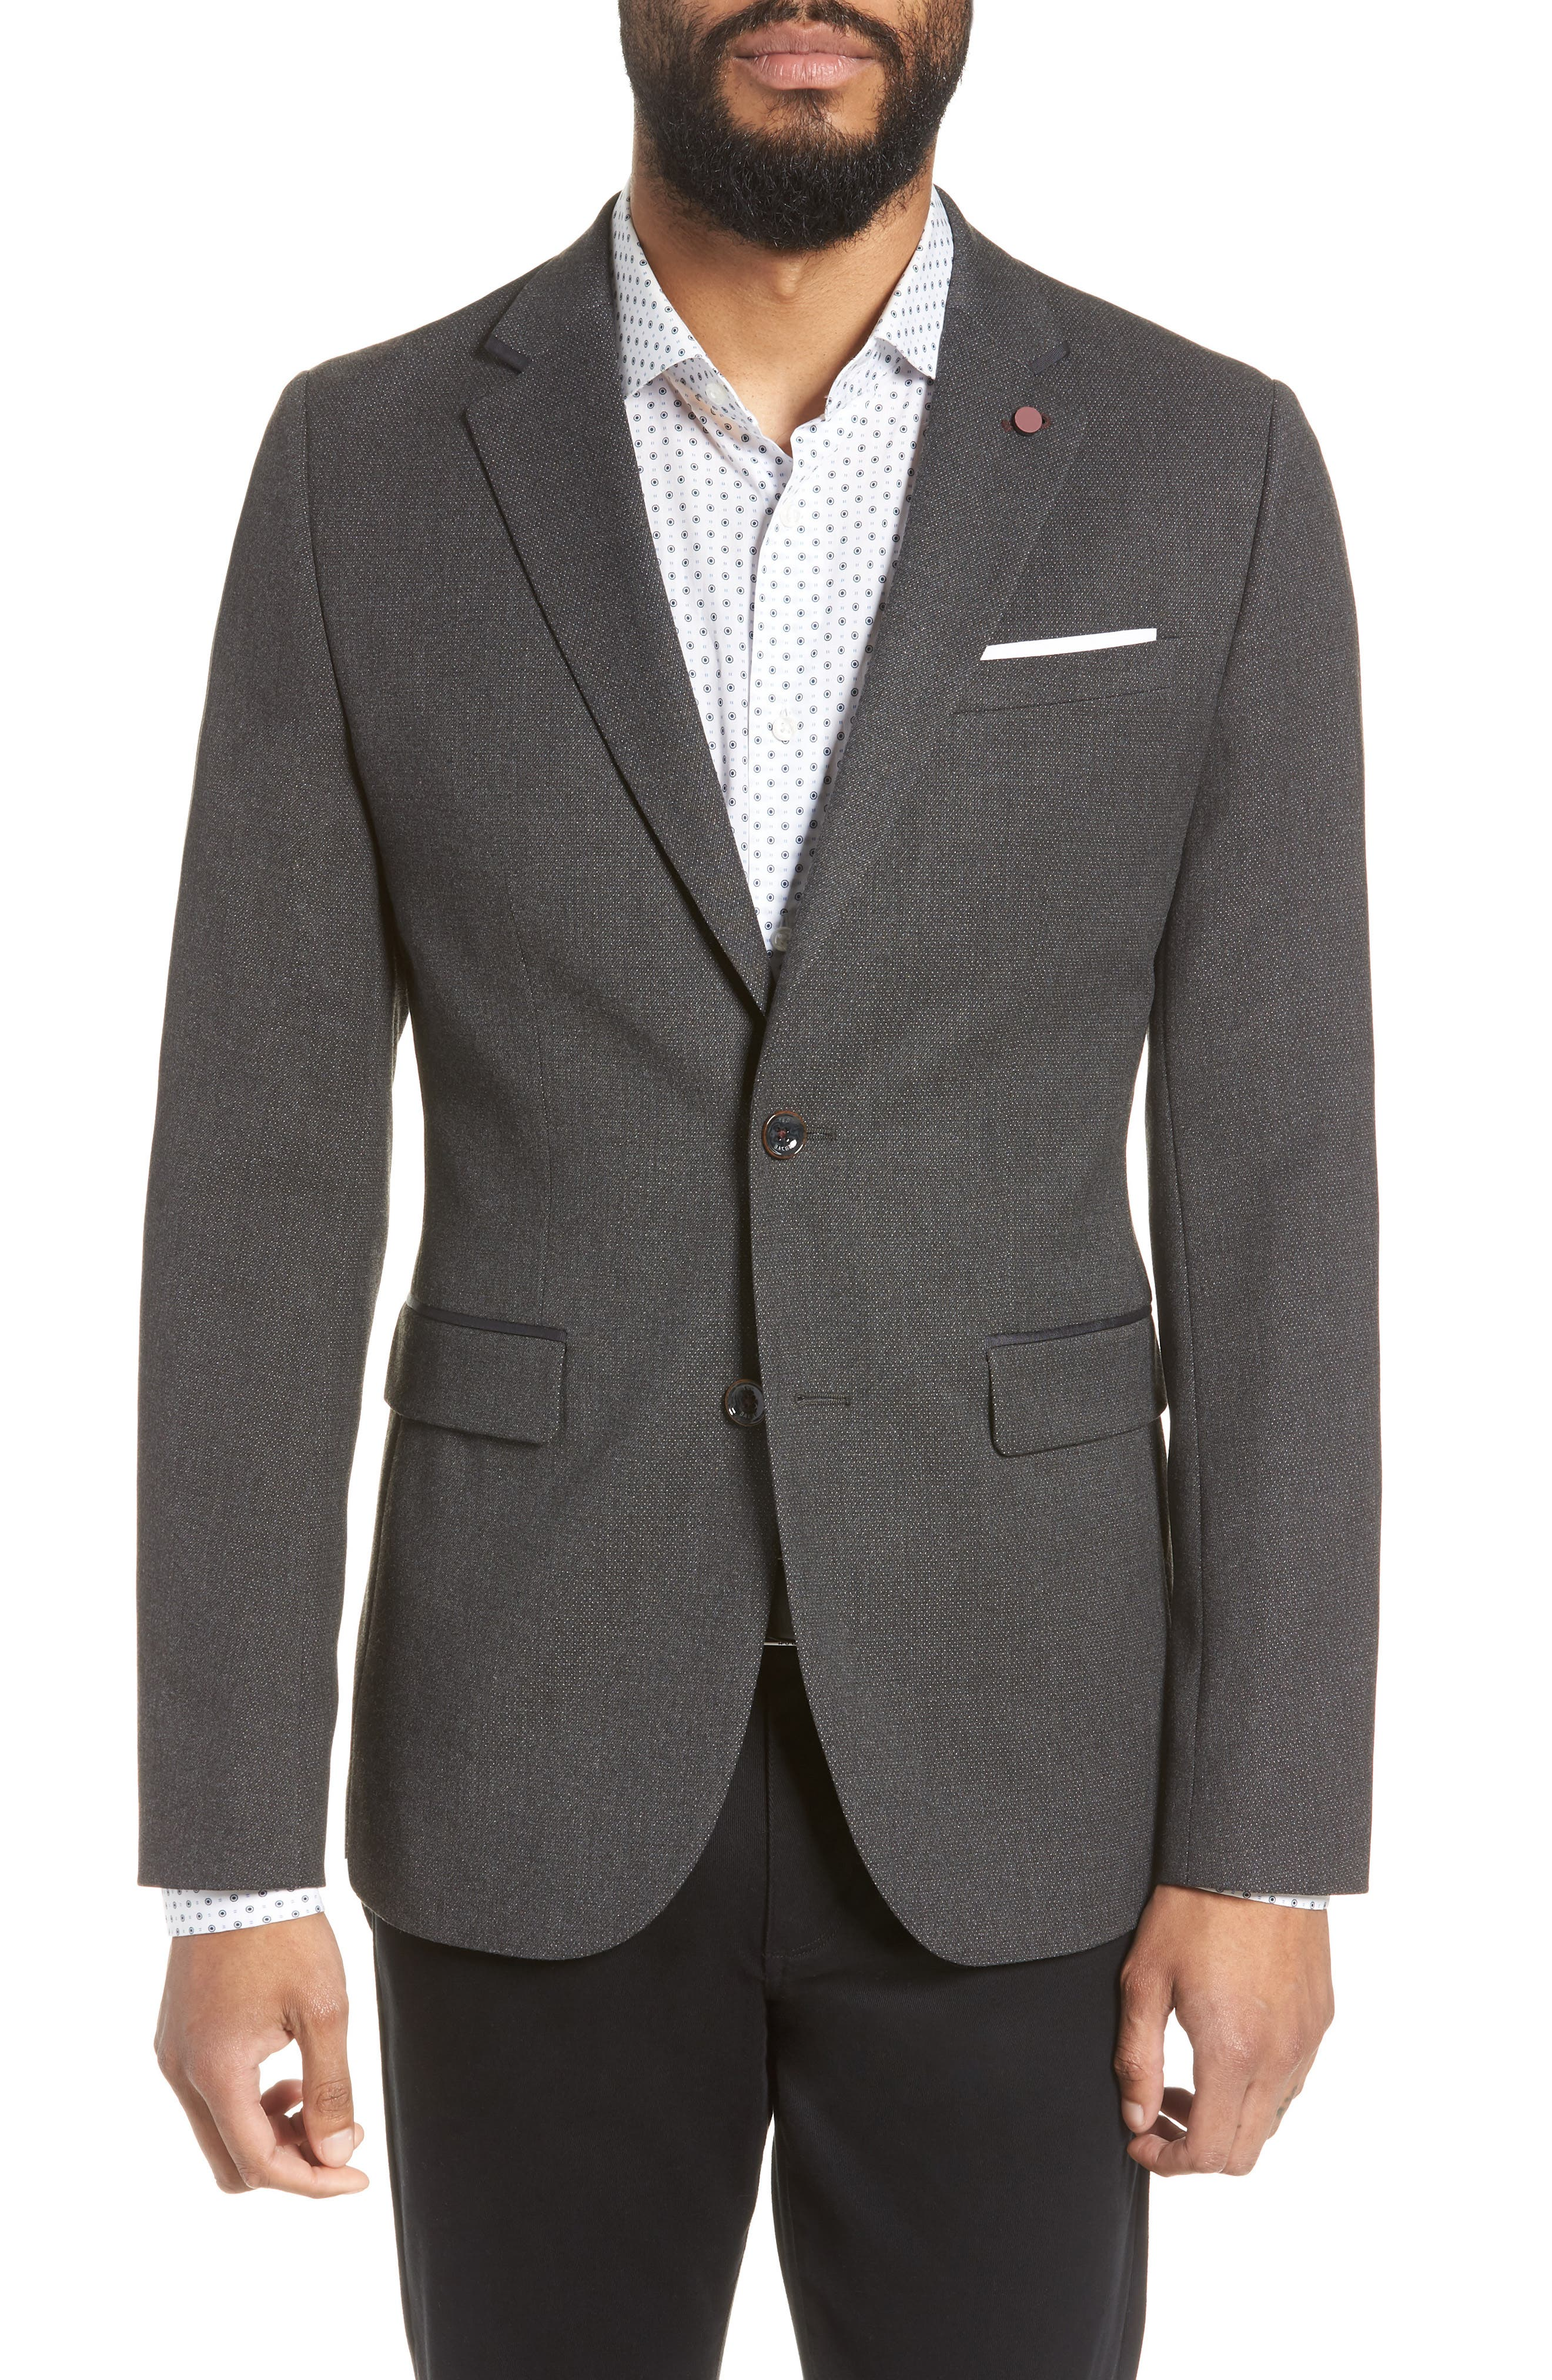 Hazlnut Trim Fit Sport Coat,                         Main,                         color, 020